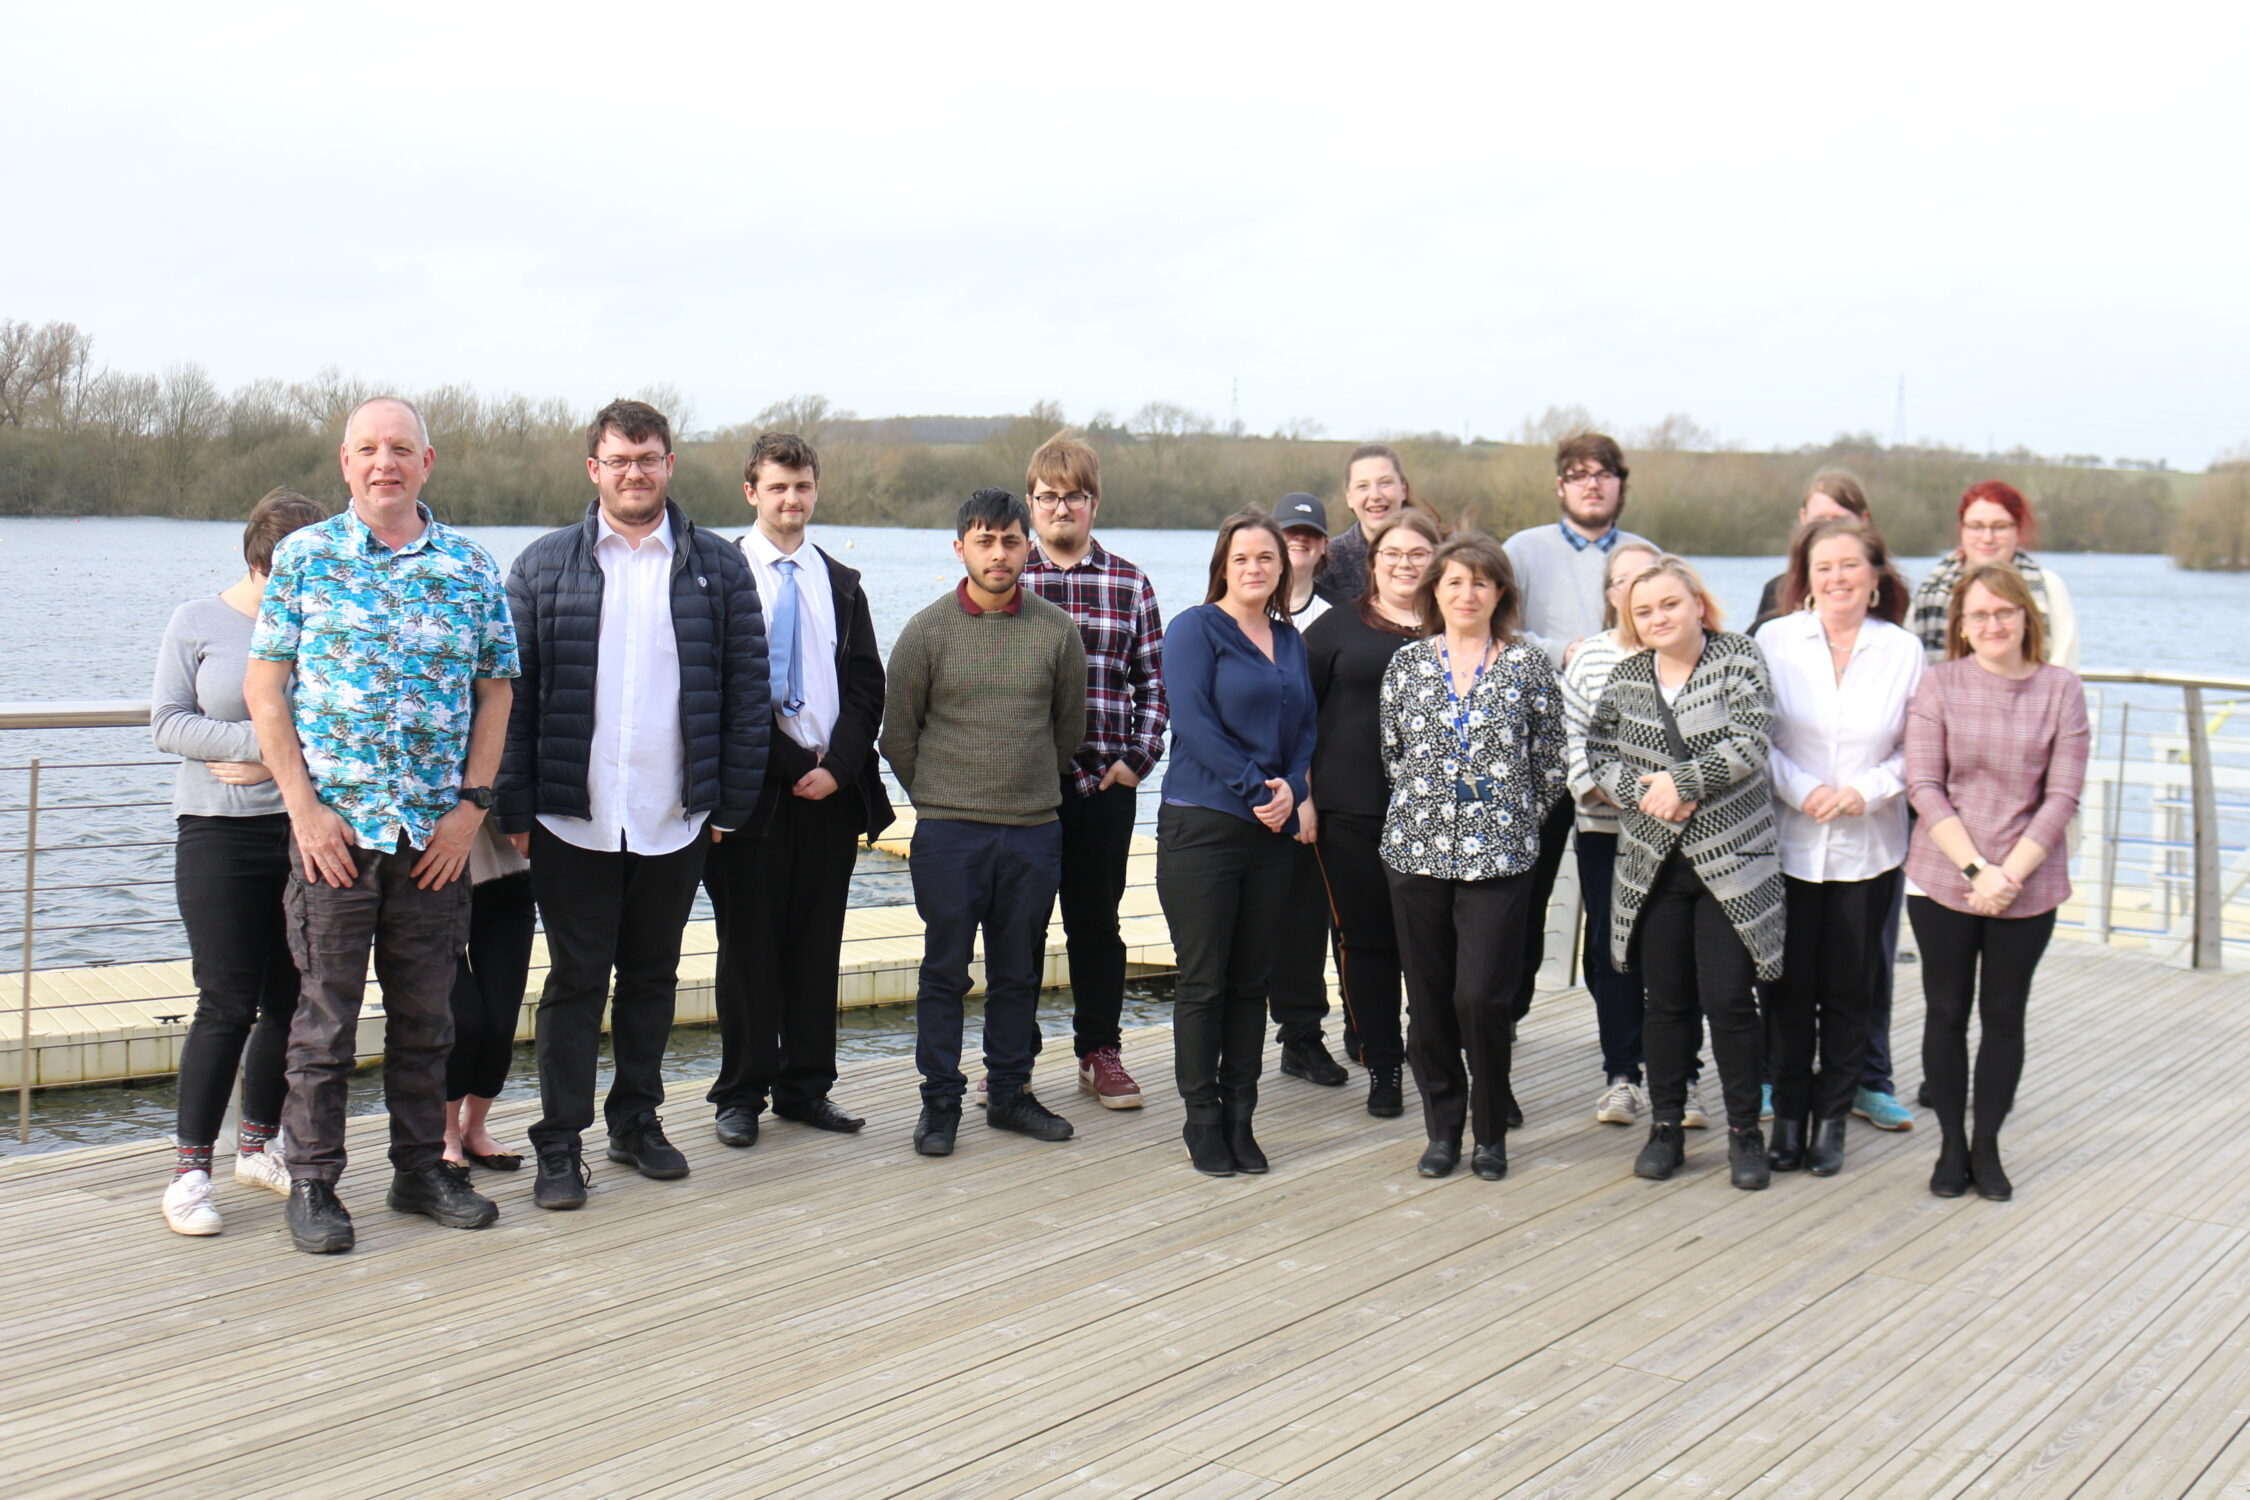 Jobs at Rushden Lakes supported by Tresham PR story